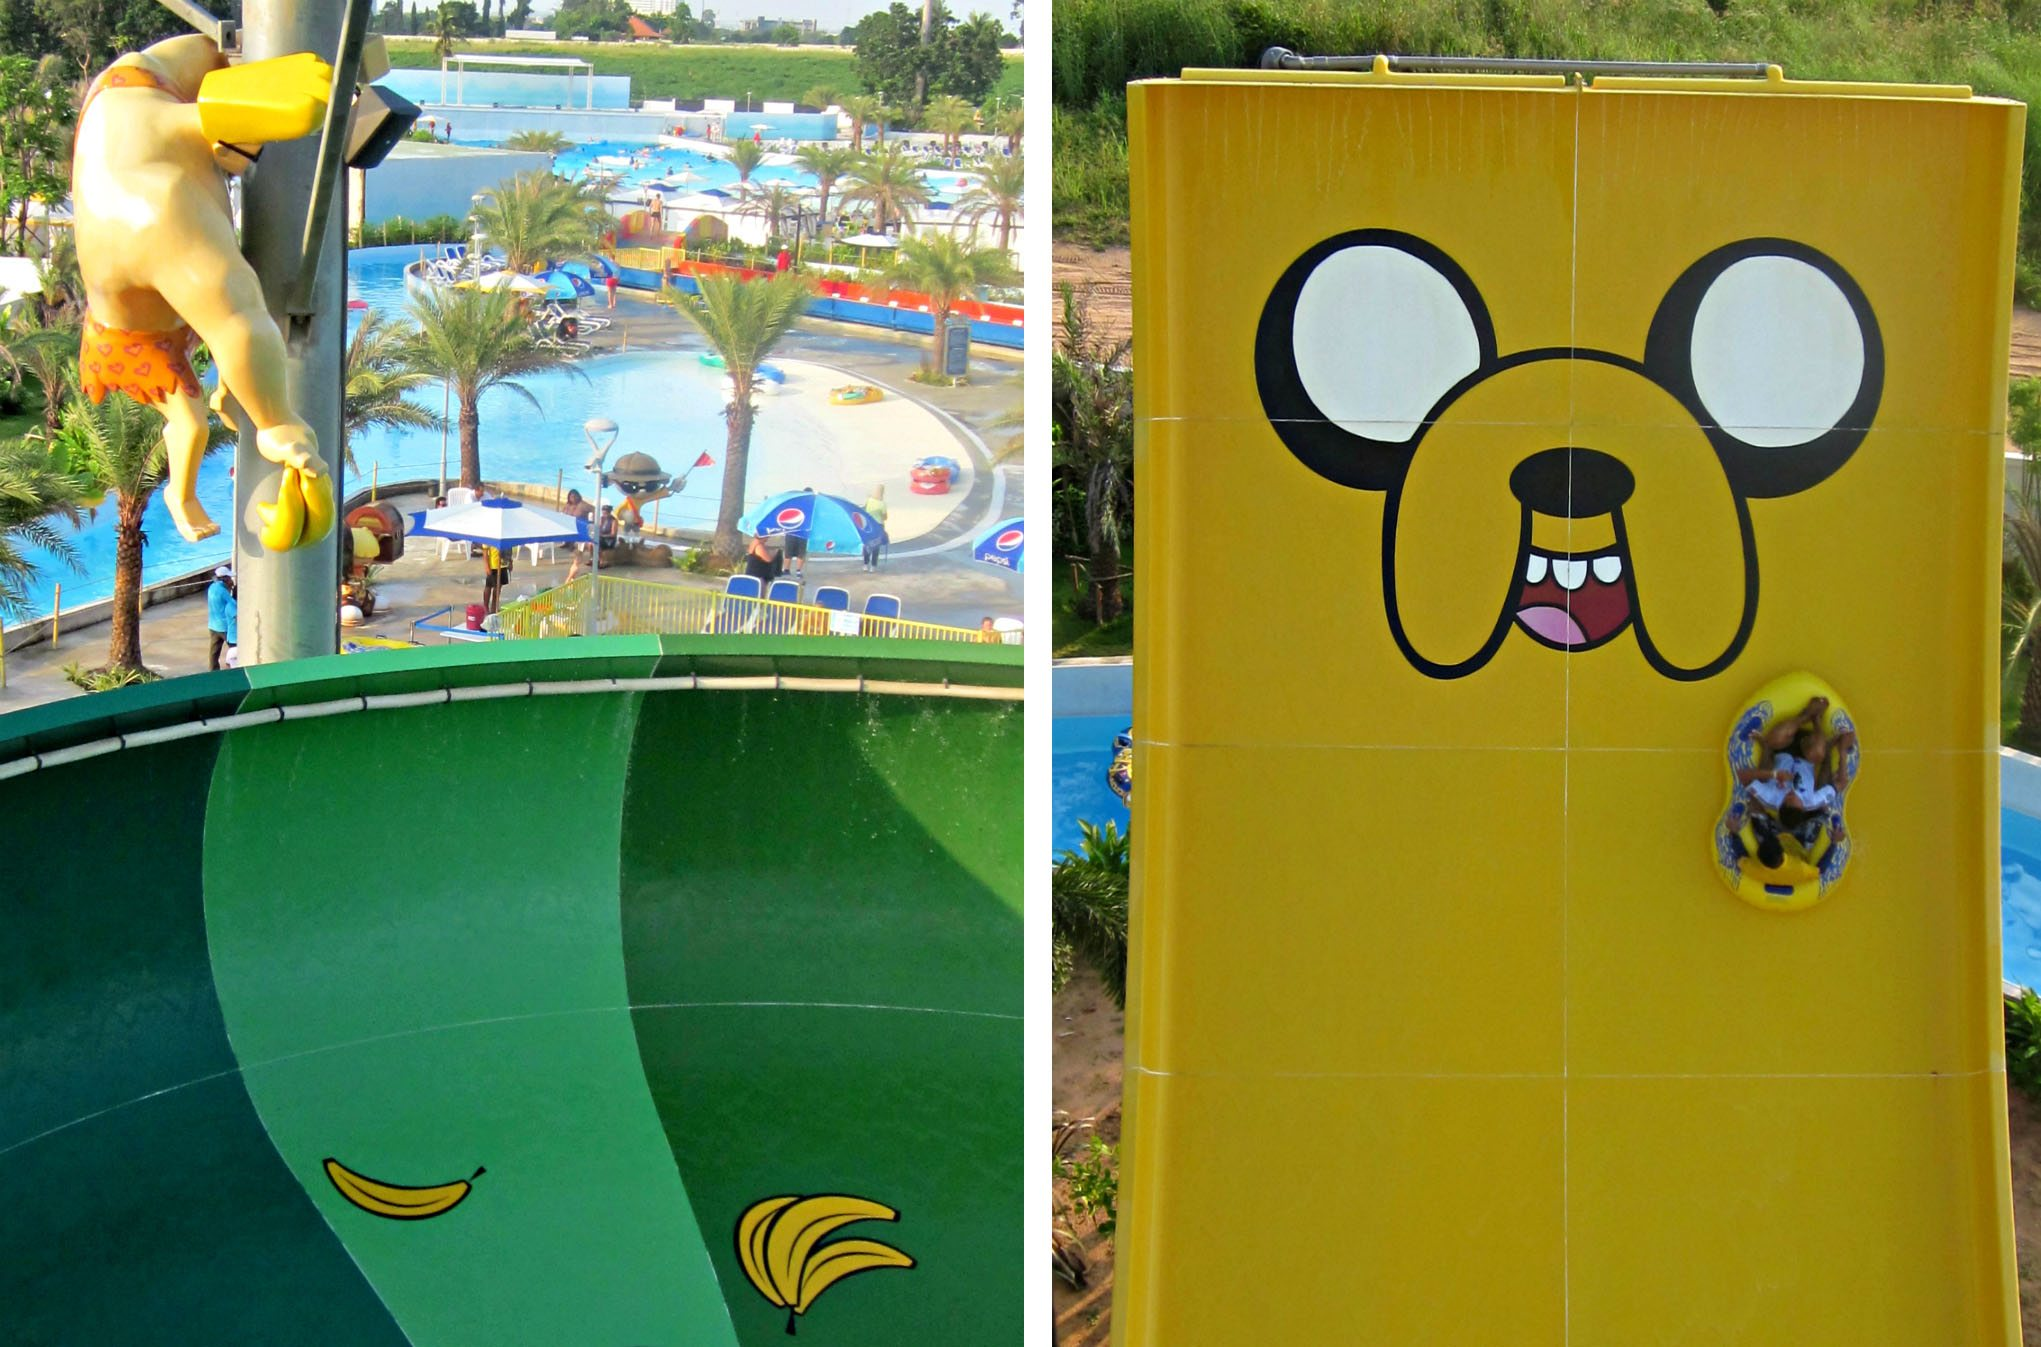 Johnny Bravo joins Ben 10, The Powerpuff Girls and other Cartoon Network heroes at the theme park (left) and rafts slide to the edge of Jake Jump (right). Photos: Saumya Ancheri